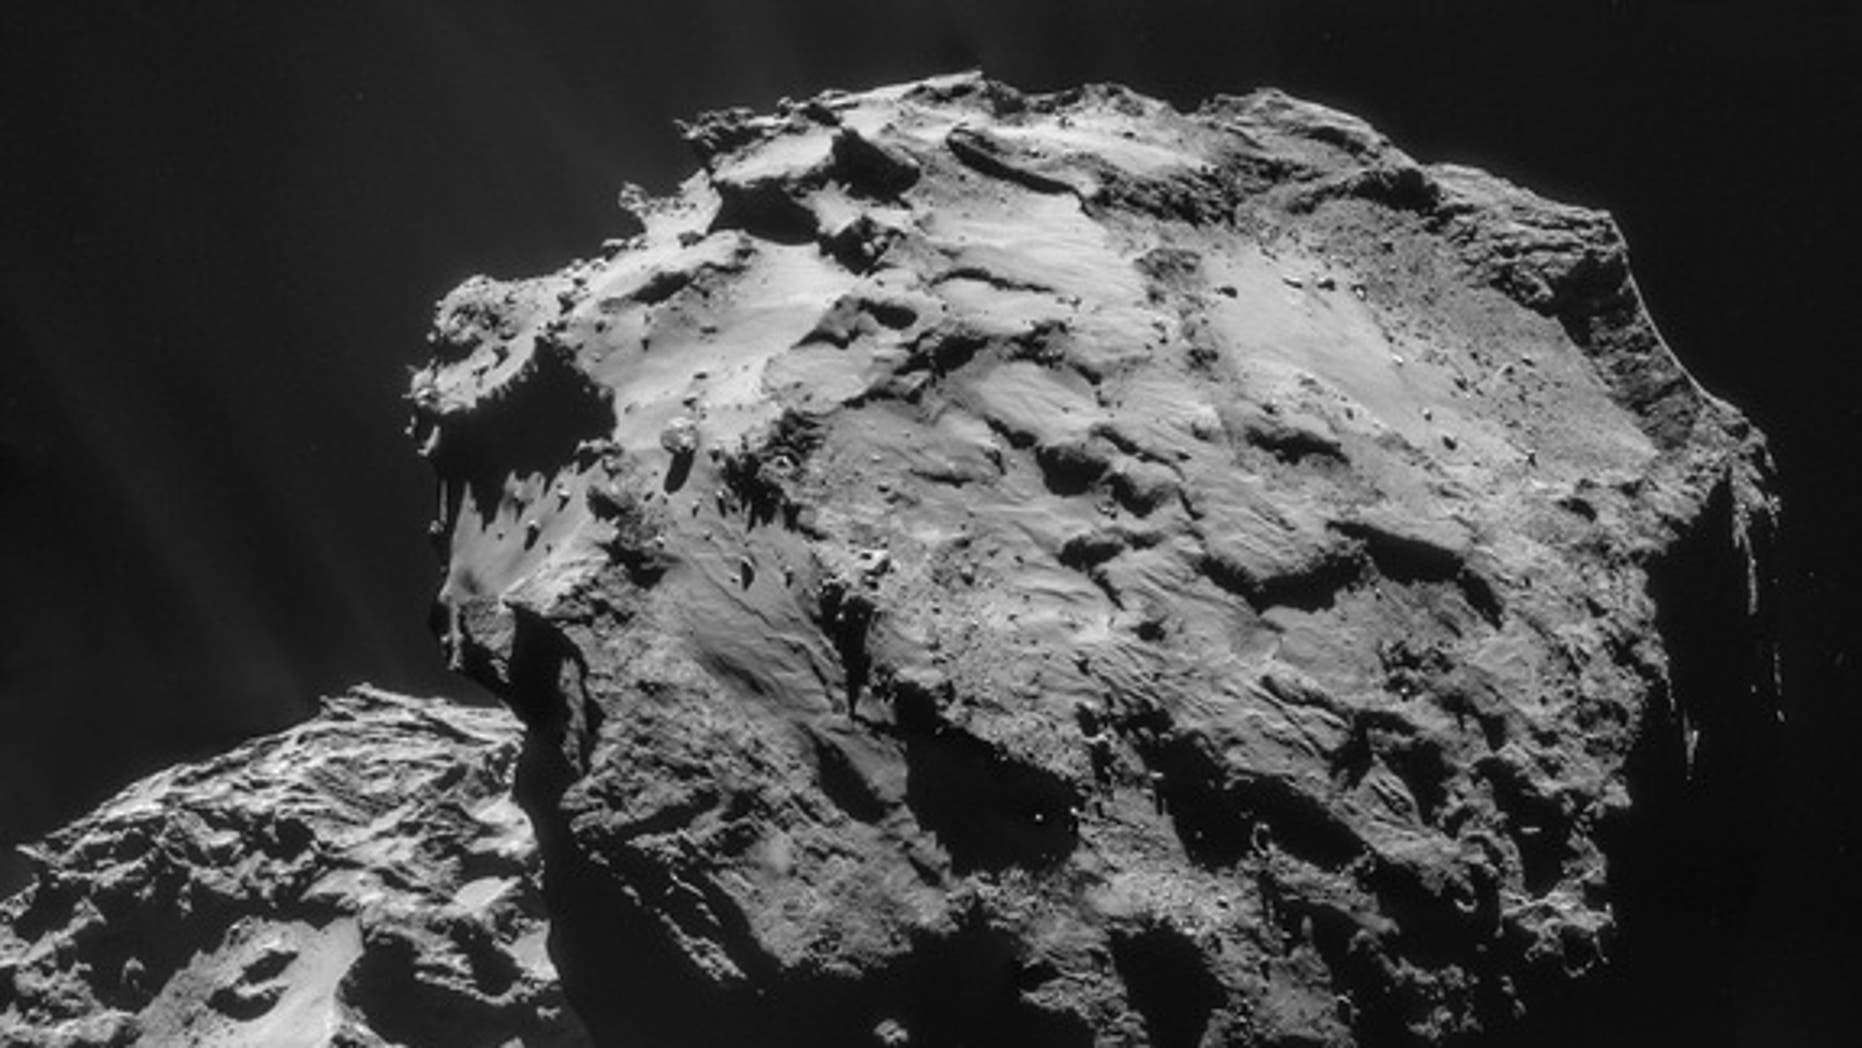 Rosetta's navigation camera obtained the four images in this mosaic on Dec. 7, 2014, from a distance of 12.2 miles (19.7 km) from the center of Comet 67P/Churyumov-Gerasimenko.